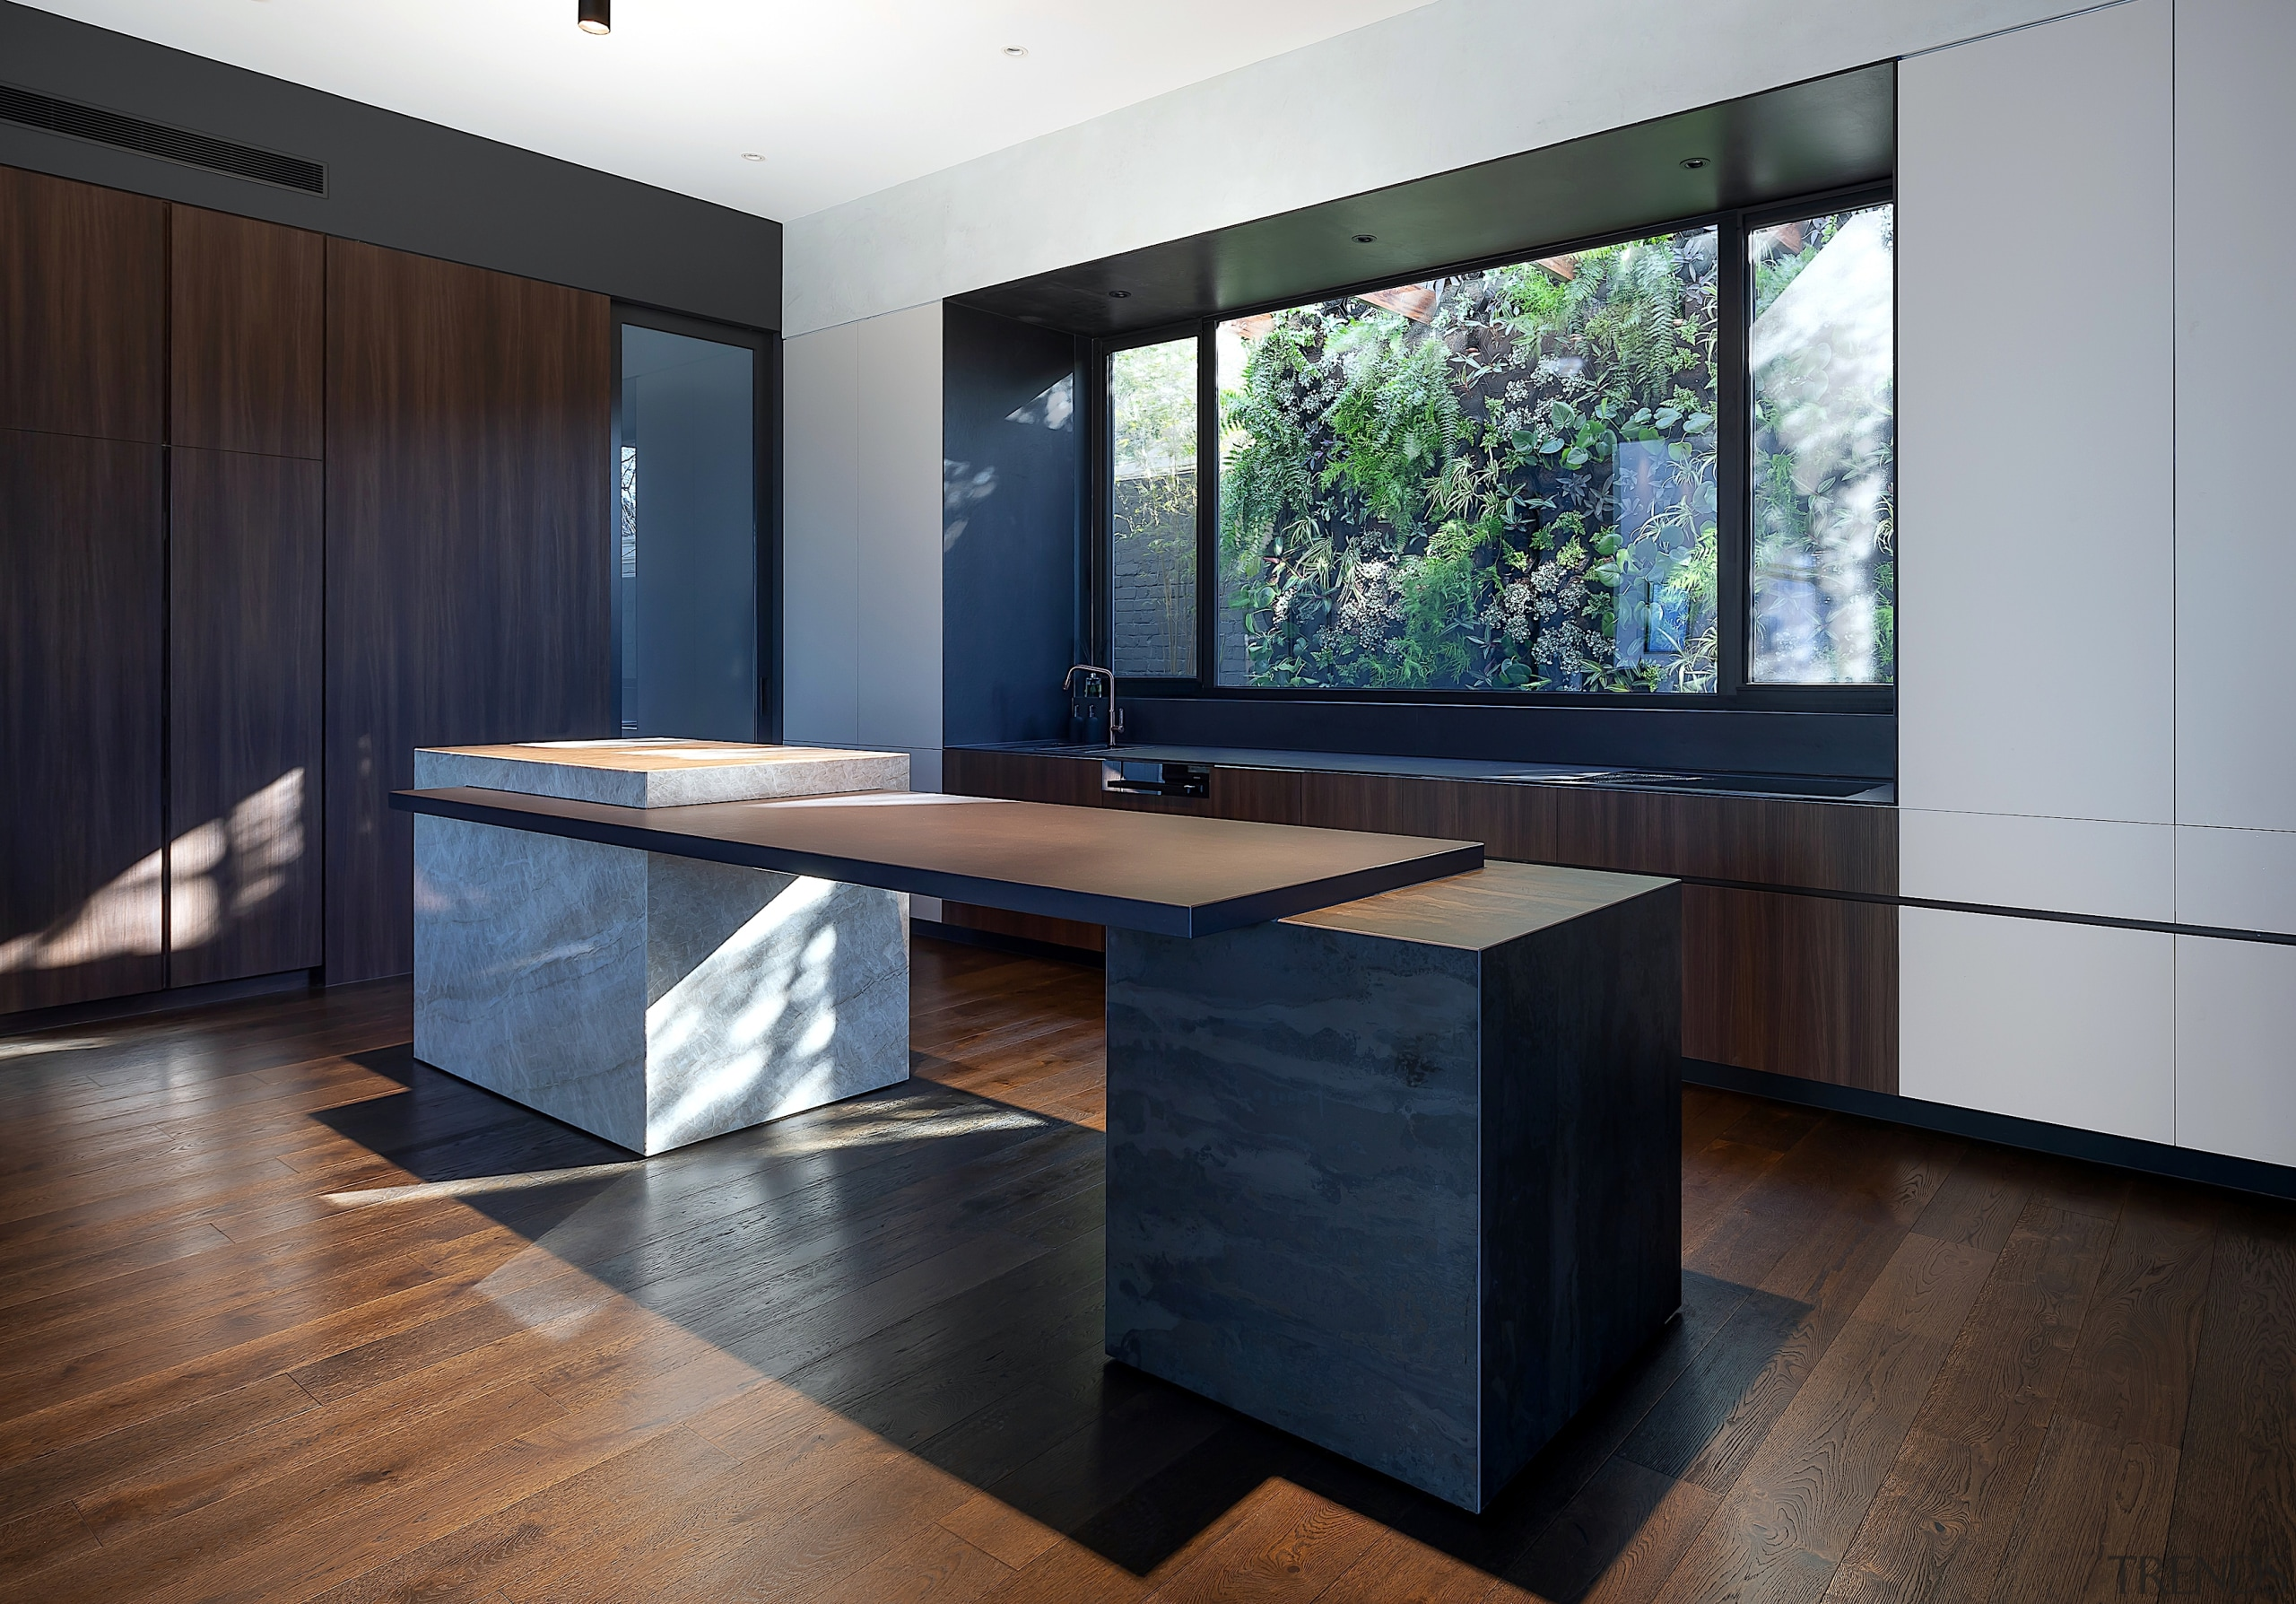 The kitchen island is composed of elements that